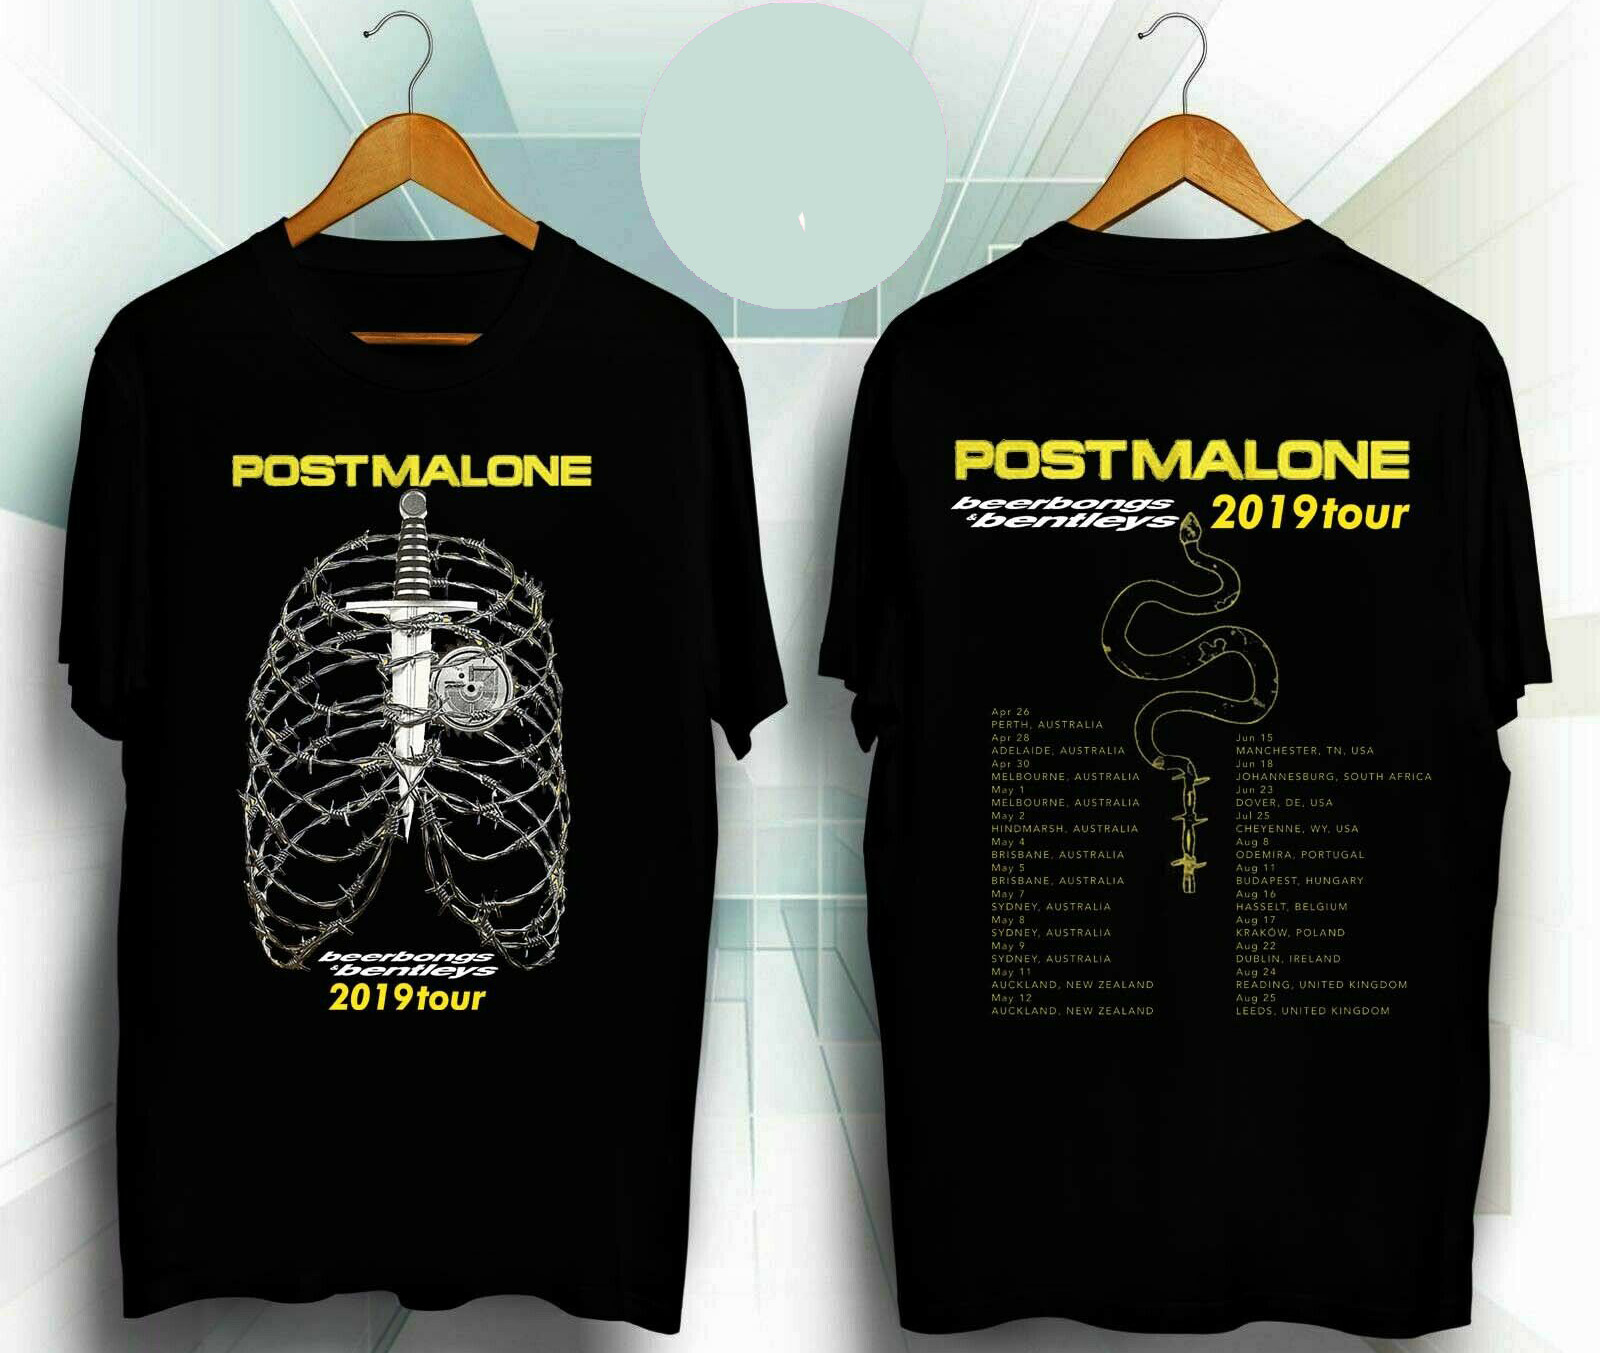 BEST Post Malone Beerbongs & Bentleys Tour 2019 Men's Black T-Shirt S-3XL Hip Hop Clothing Cotton Short Sleeve T Shirt Top Tee